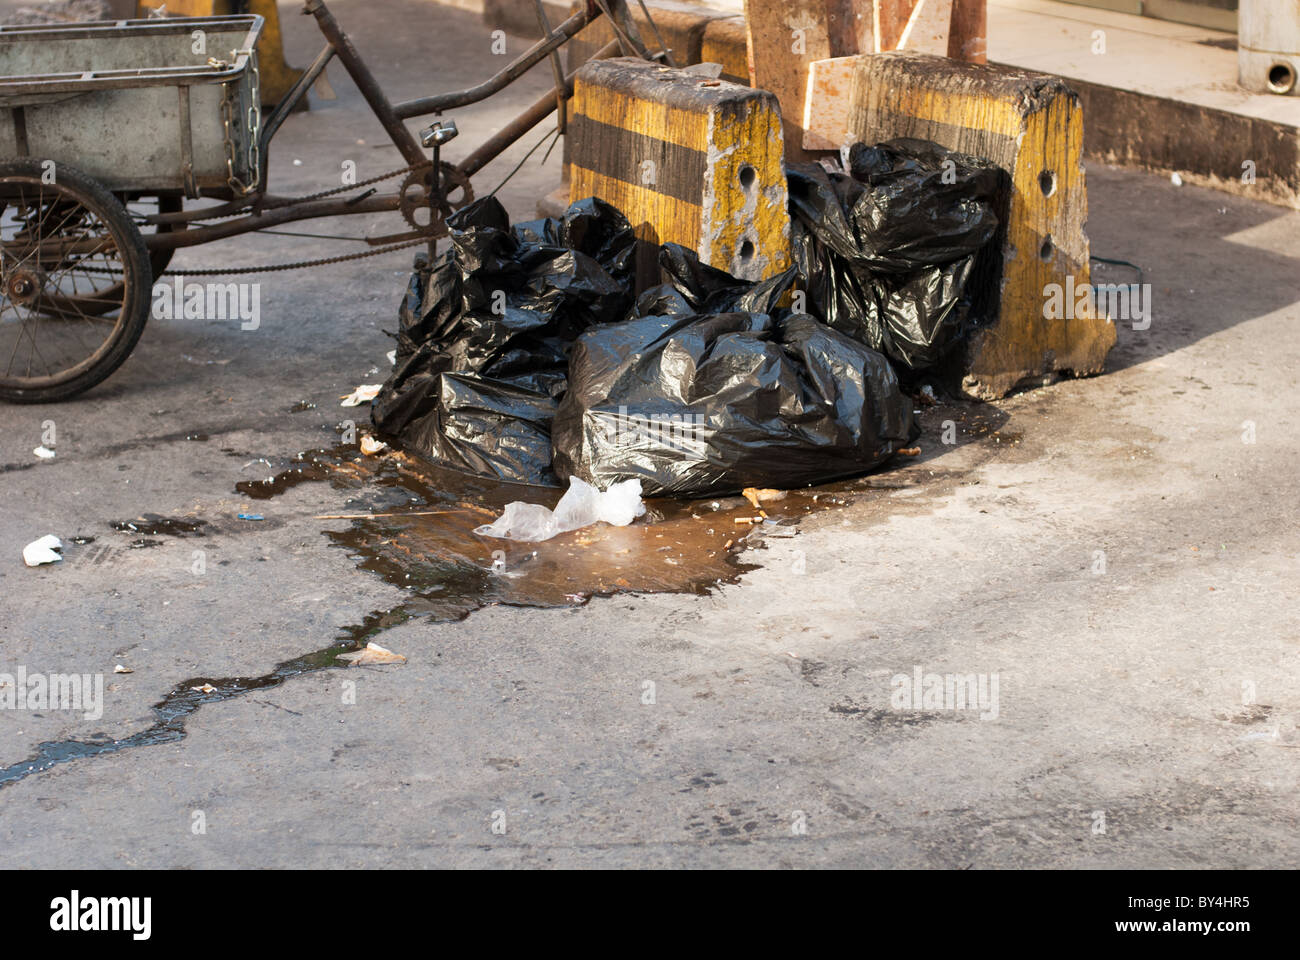 garbage left on the street - Stock Image